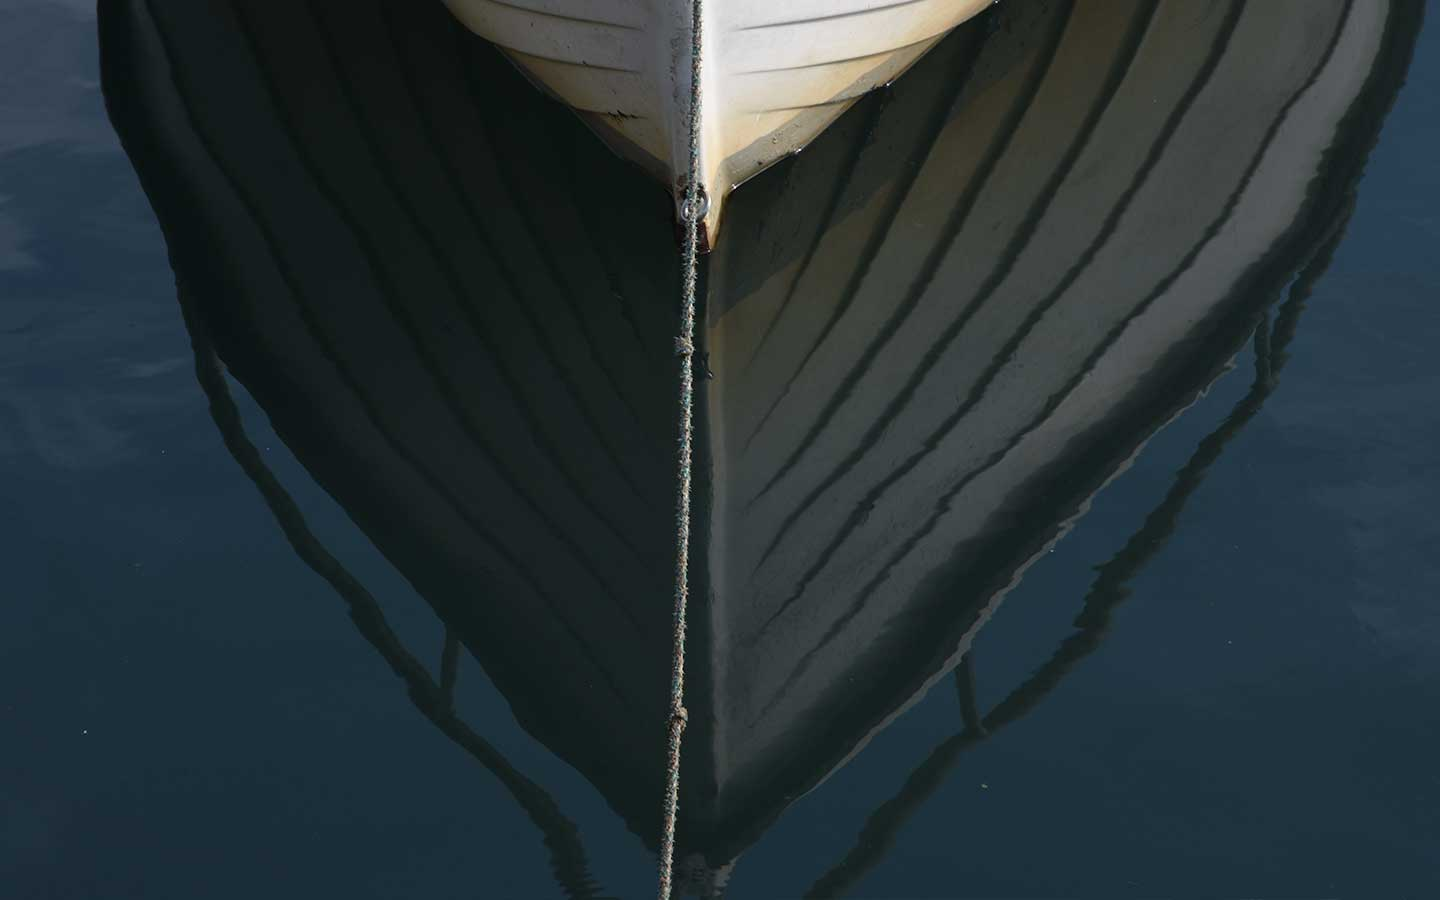 boat reflection in water in cornwall